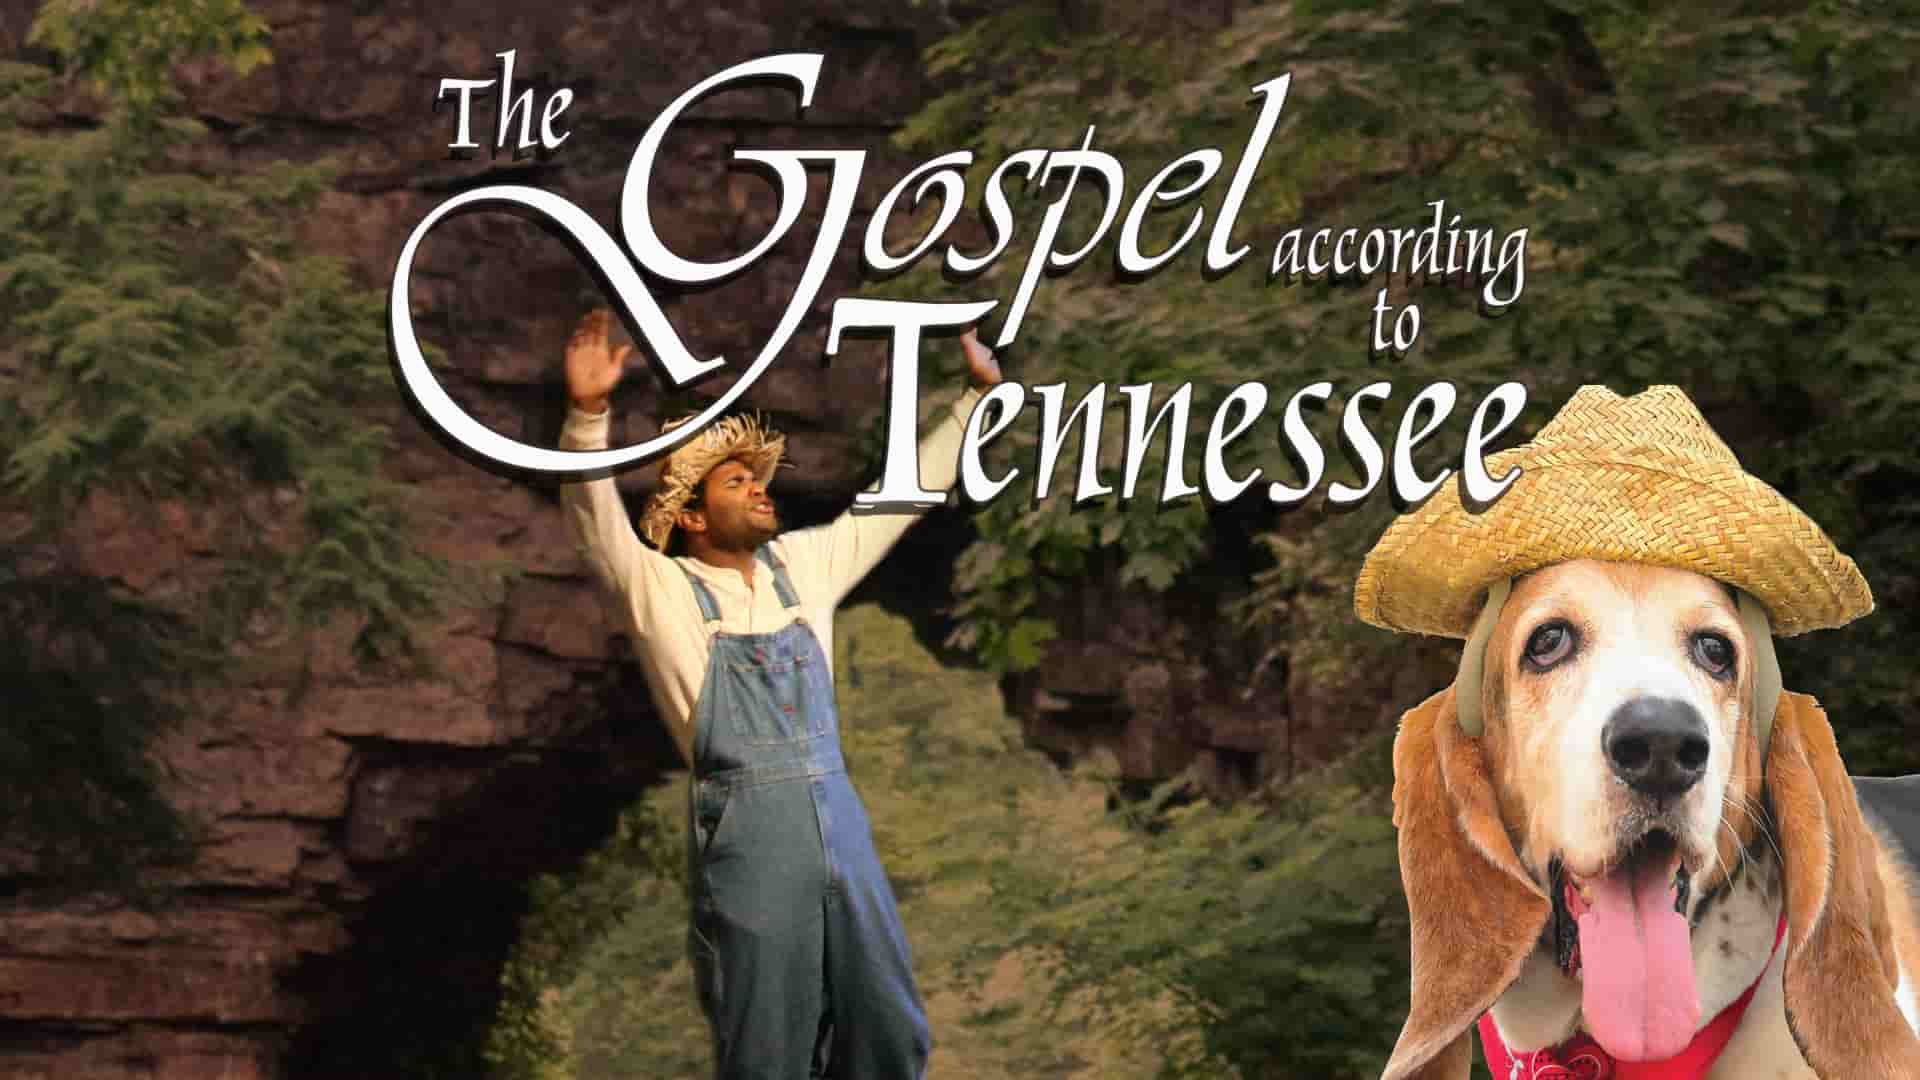 gospel according to tennessee